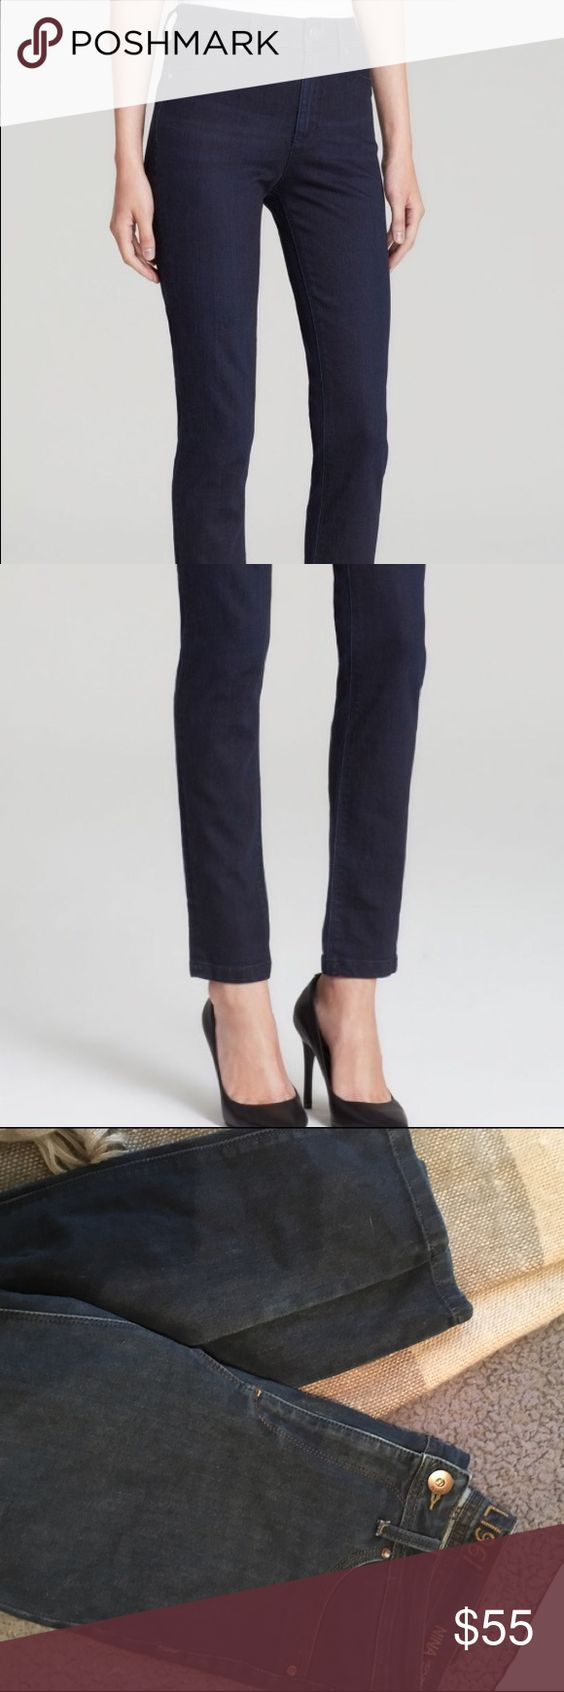 DL1961 Nina High Rise Jeans High-rise DL1961 skinny jeans with a figure-hugging fit. Faux front pockets and patch back pockets. Button closure and zip fly.  Fabric: Lightweight, 4-way stretch denim. 63% modal/37% polyester. DL1961 Jeans